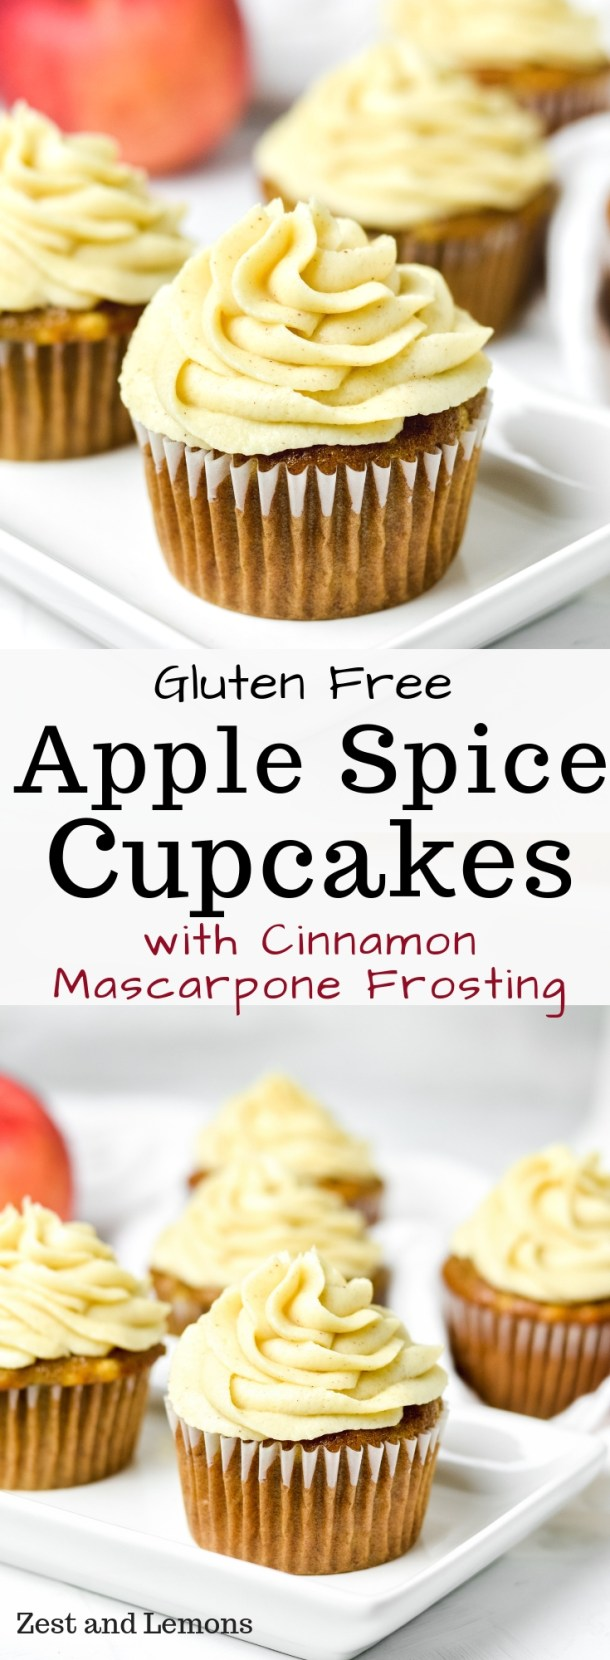 Gluten free apple spice cupcakes with cinnamon mascarpone frosting - Zest and Lemons #glutenfree #glutenfreecupcakes #applecake #glutenfreedesserts